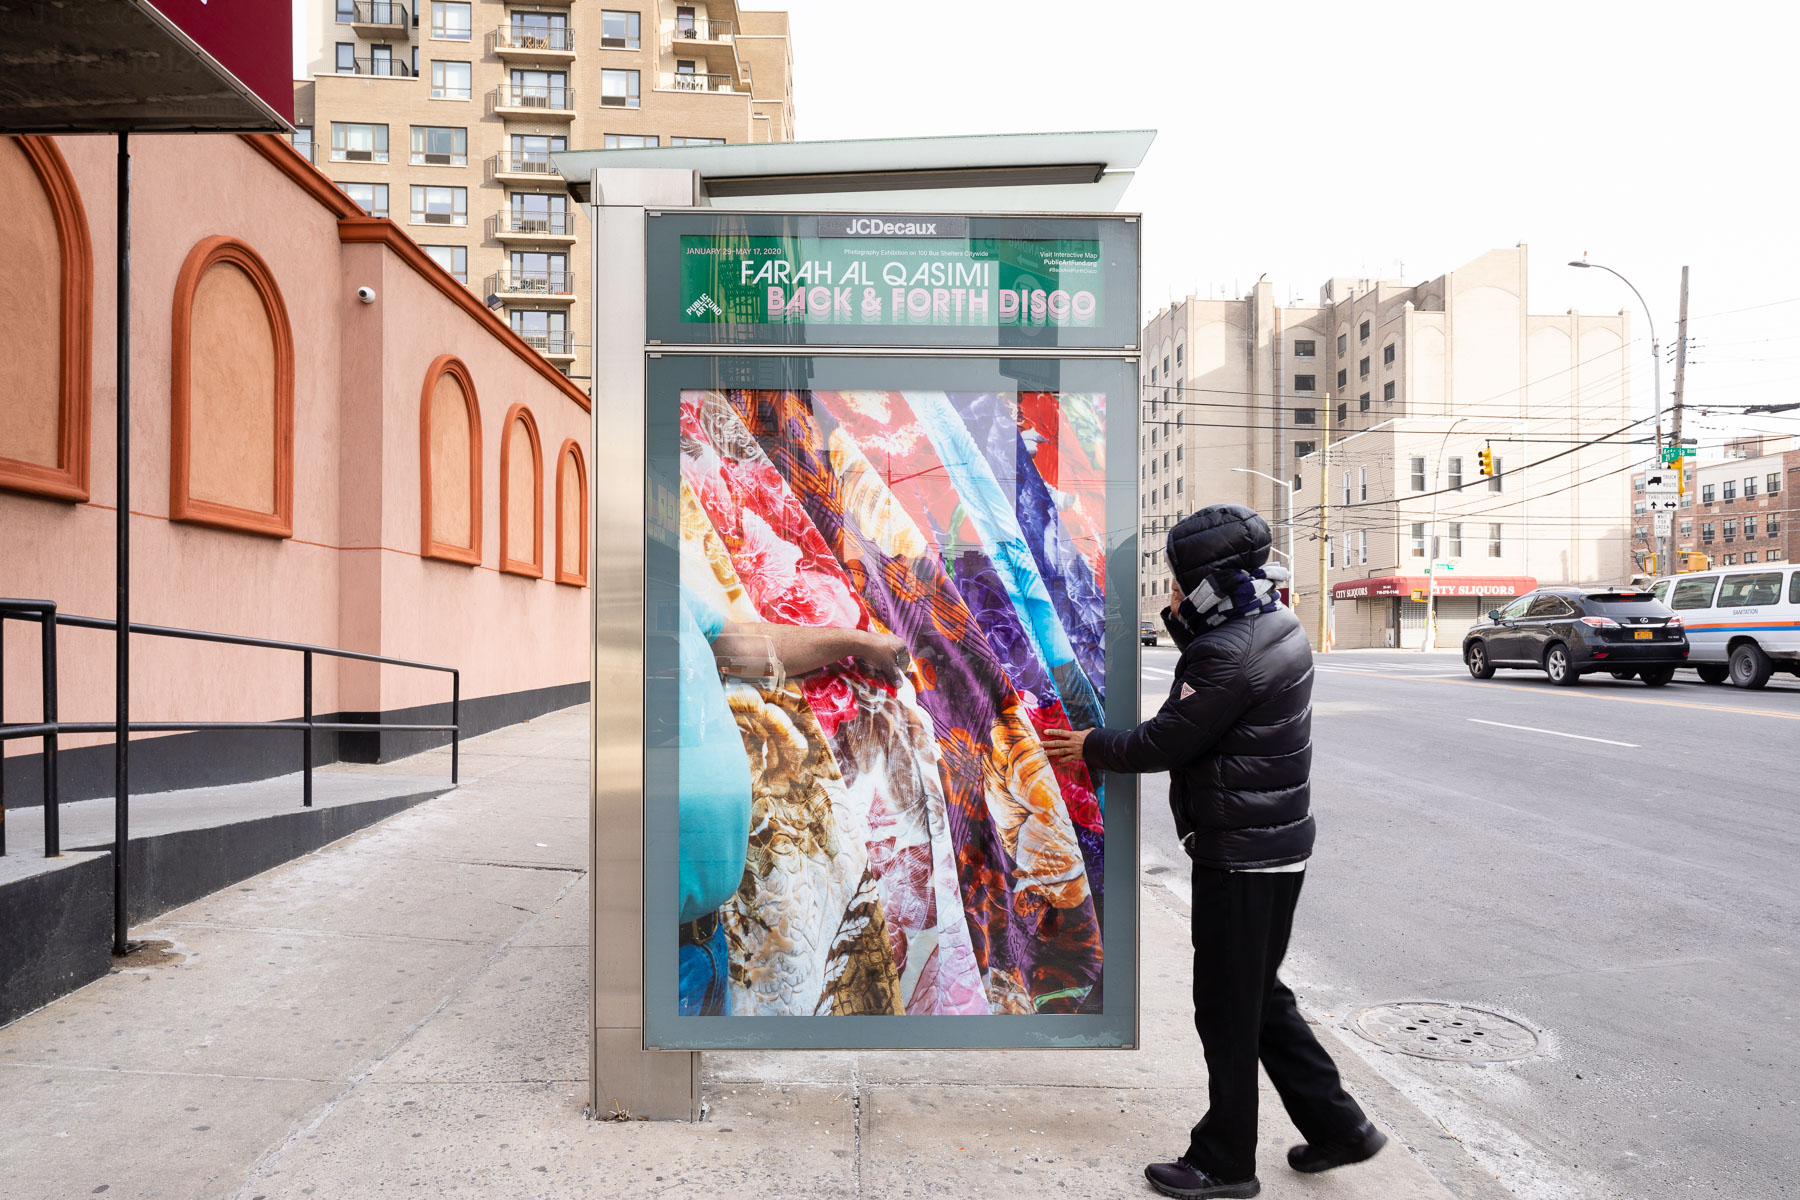 "Farah Al Qasimi, ""Blanket Shop"" (2019). Photo: James Ewing, Courtesy of Public Art Fund, NY.  Photographic work as a part of Back and Forth Disco, presented by Public Art Fund on 100 JCDecaux bus shelters citywide, January 29 – May 17, 2020"